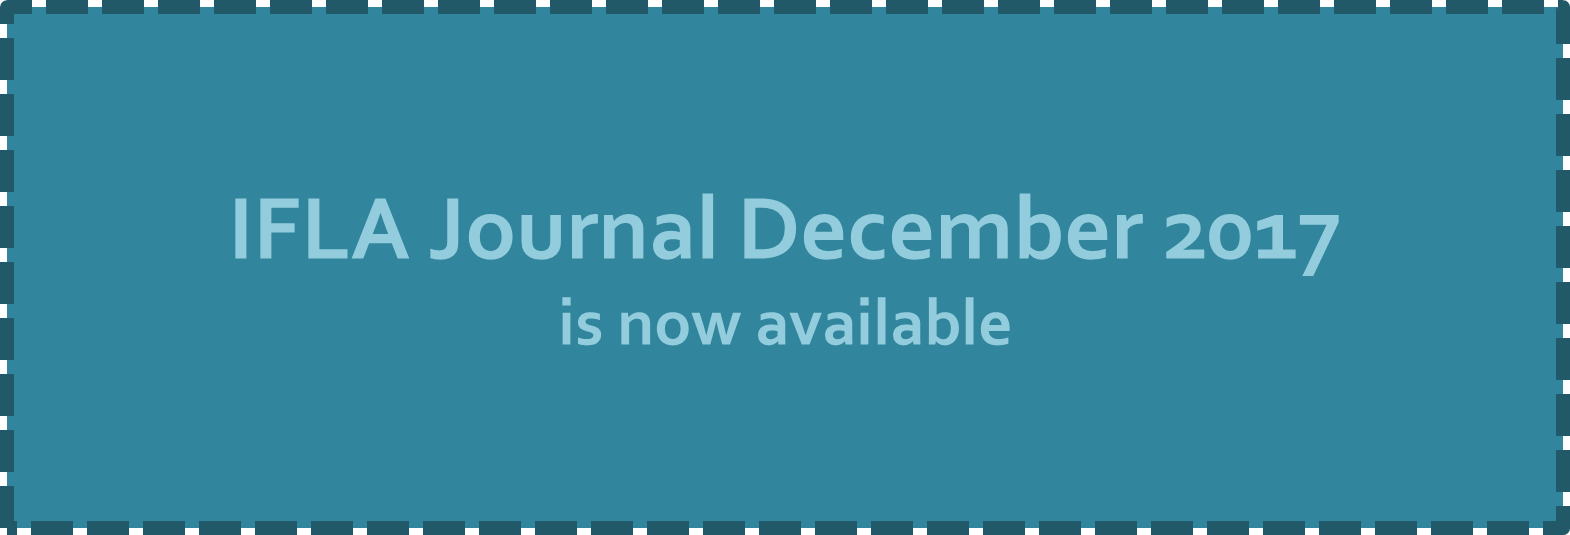 IFLA Journal December 2017 is available